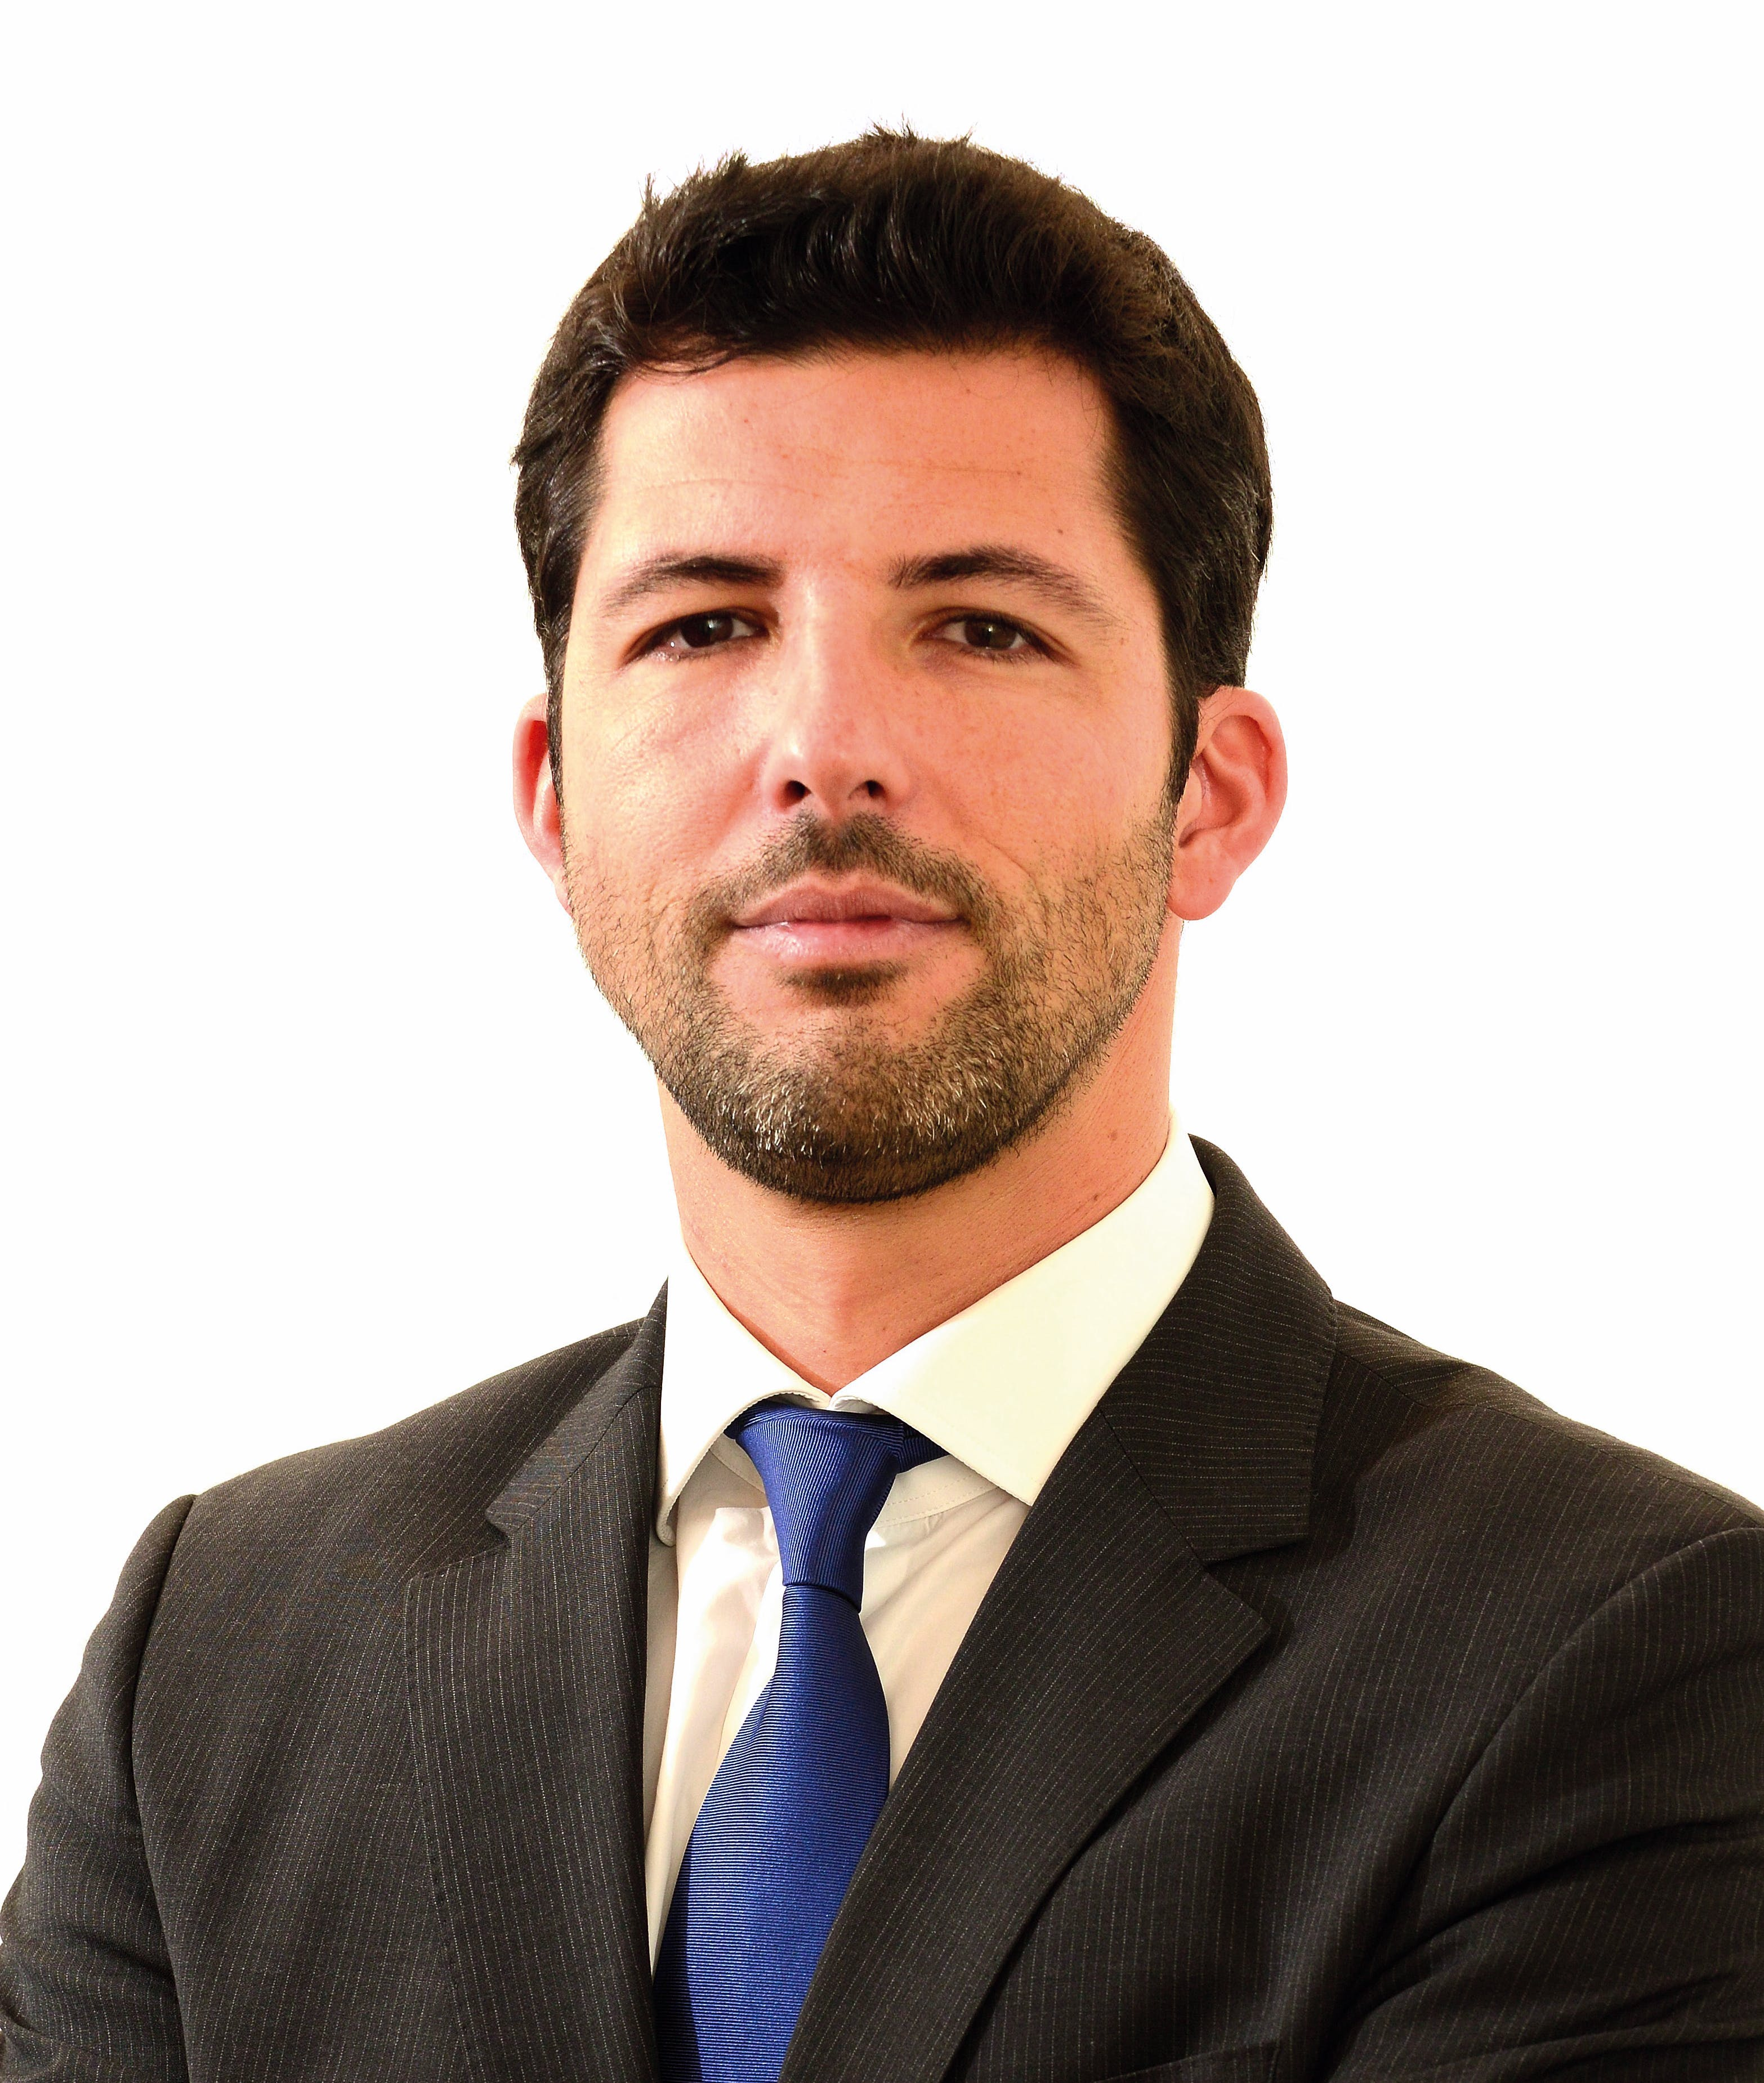 Miguel Spínola, partner, PMJ Advogados, interviewed for Angola Mozambique investment feature